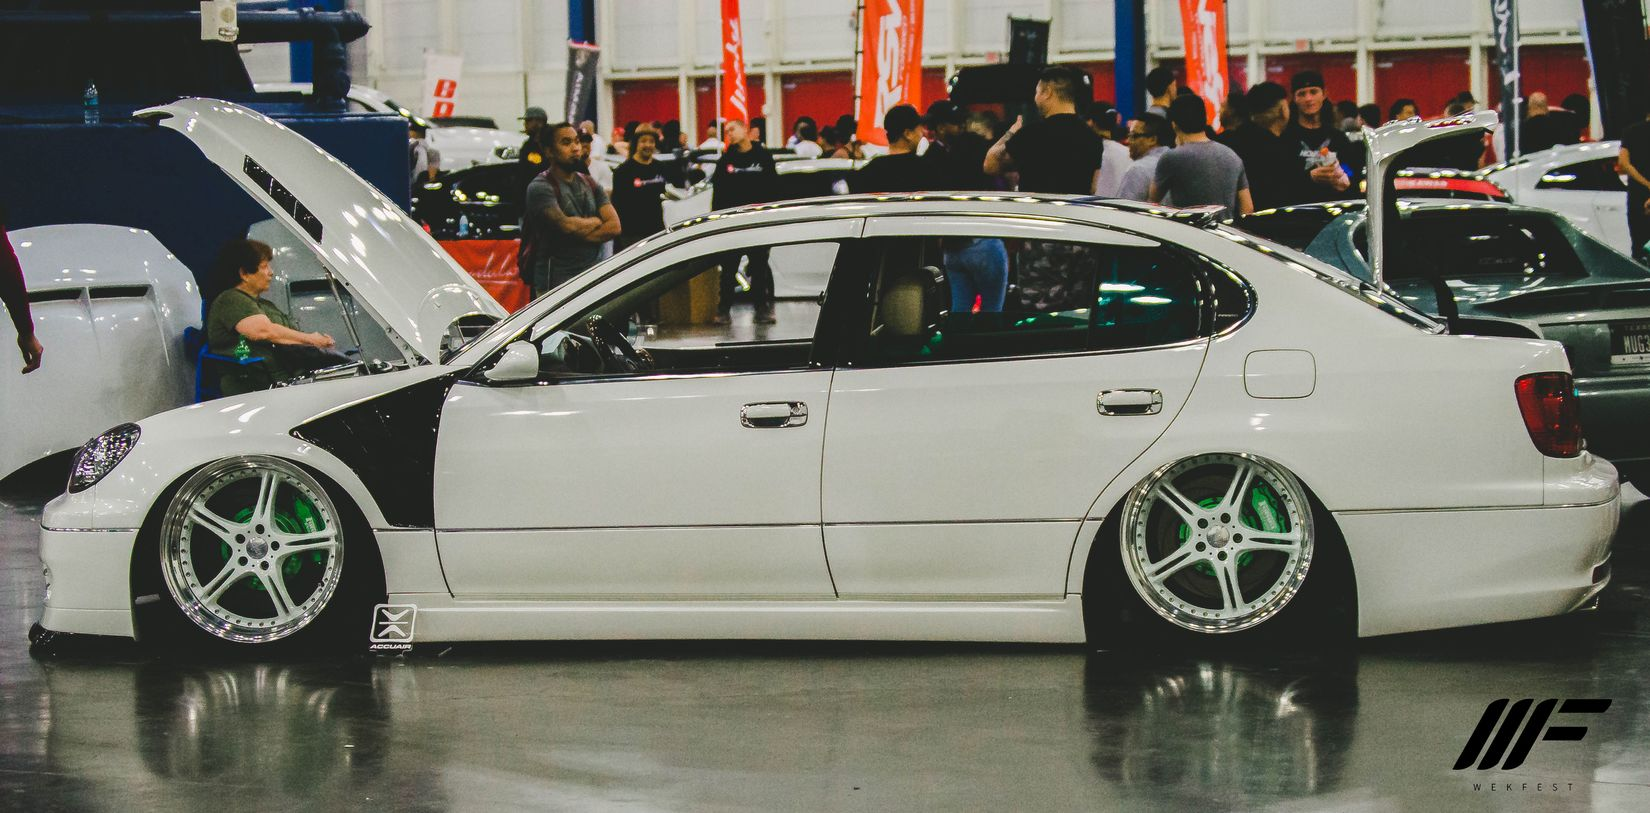 Car Street Transportation Mode Of Transport Day Indoorsphotography Wekfest2016 Wekfest Lowriders Lowriders 😍 Crowd People Together Dropitlow Lowerthanyourgrandmatitts Lowestcar Stancenation Expensive Cars Sexycars Carporn Streetphotography Streetphotography Urbanphotography Dopery